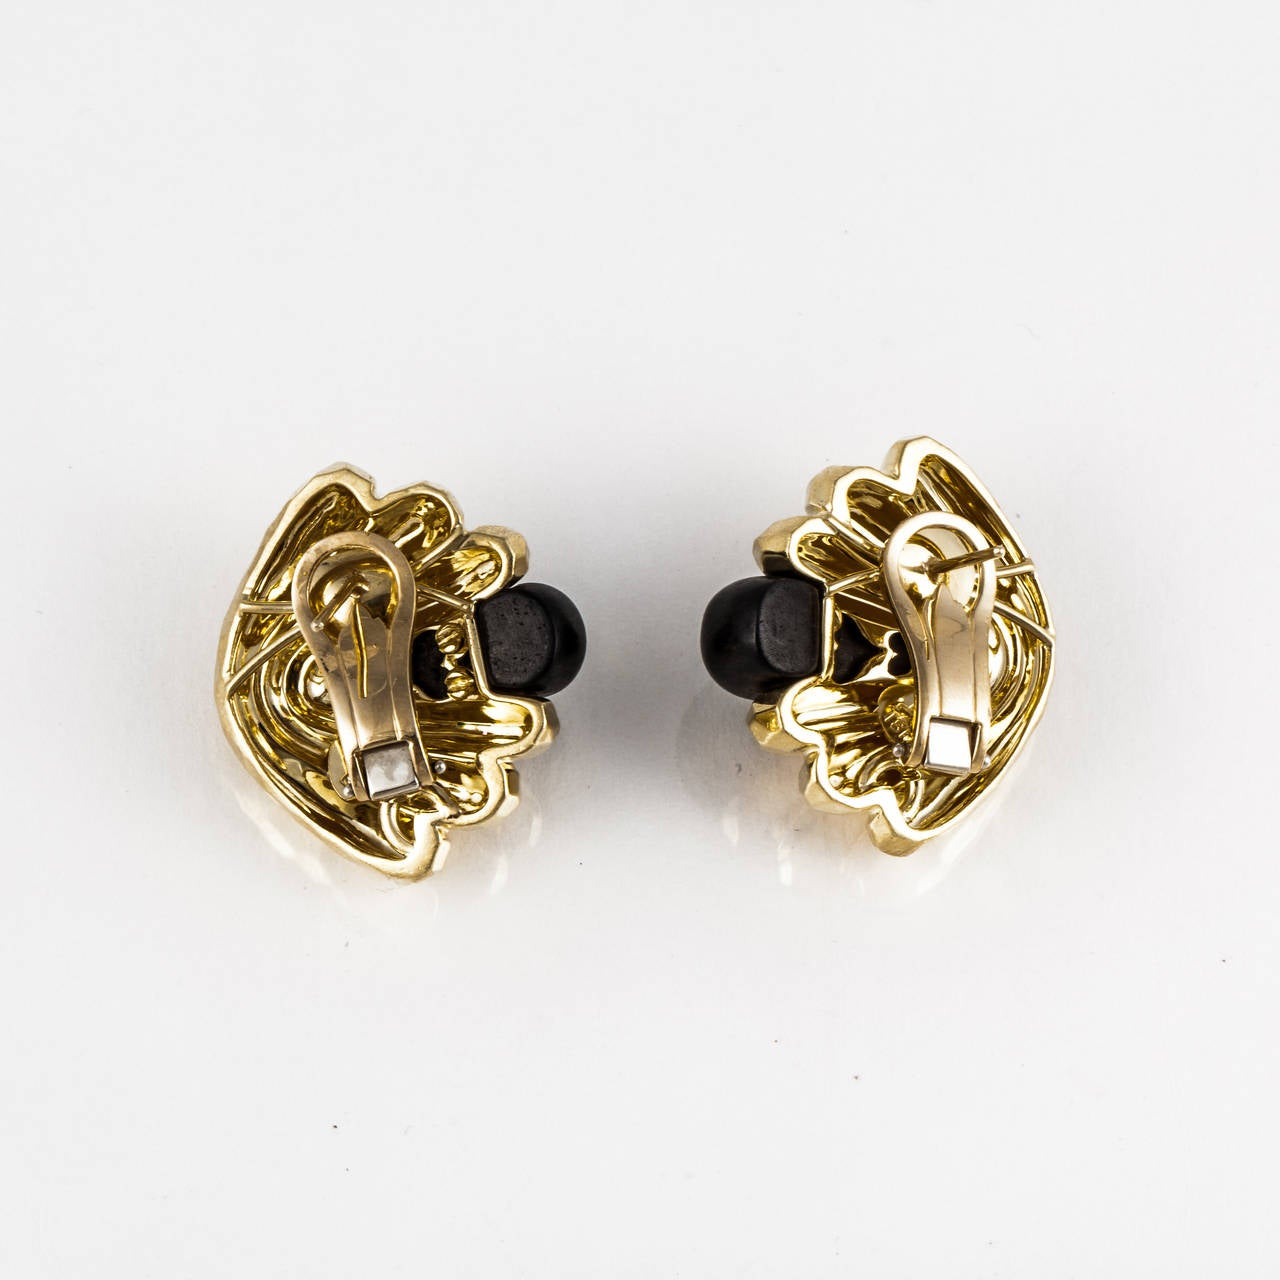 Henry Dunay Ebony Gold Ear Clips In Excellent Condition For Sale In Houston, TX